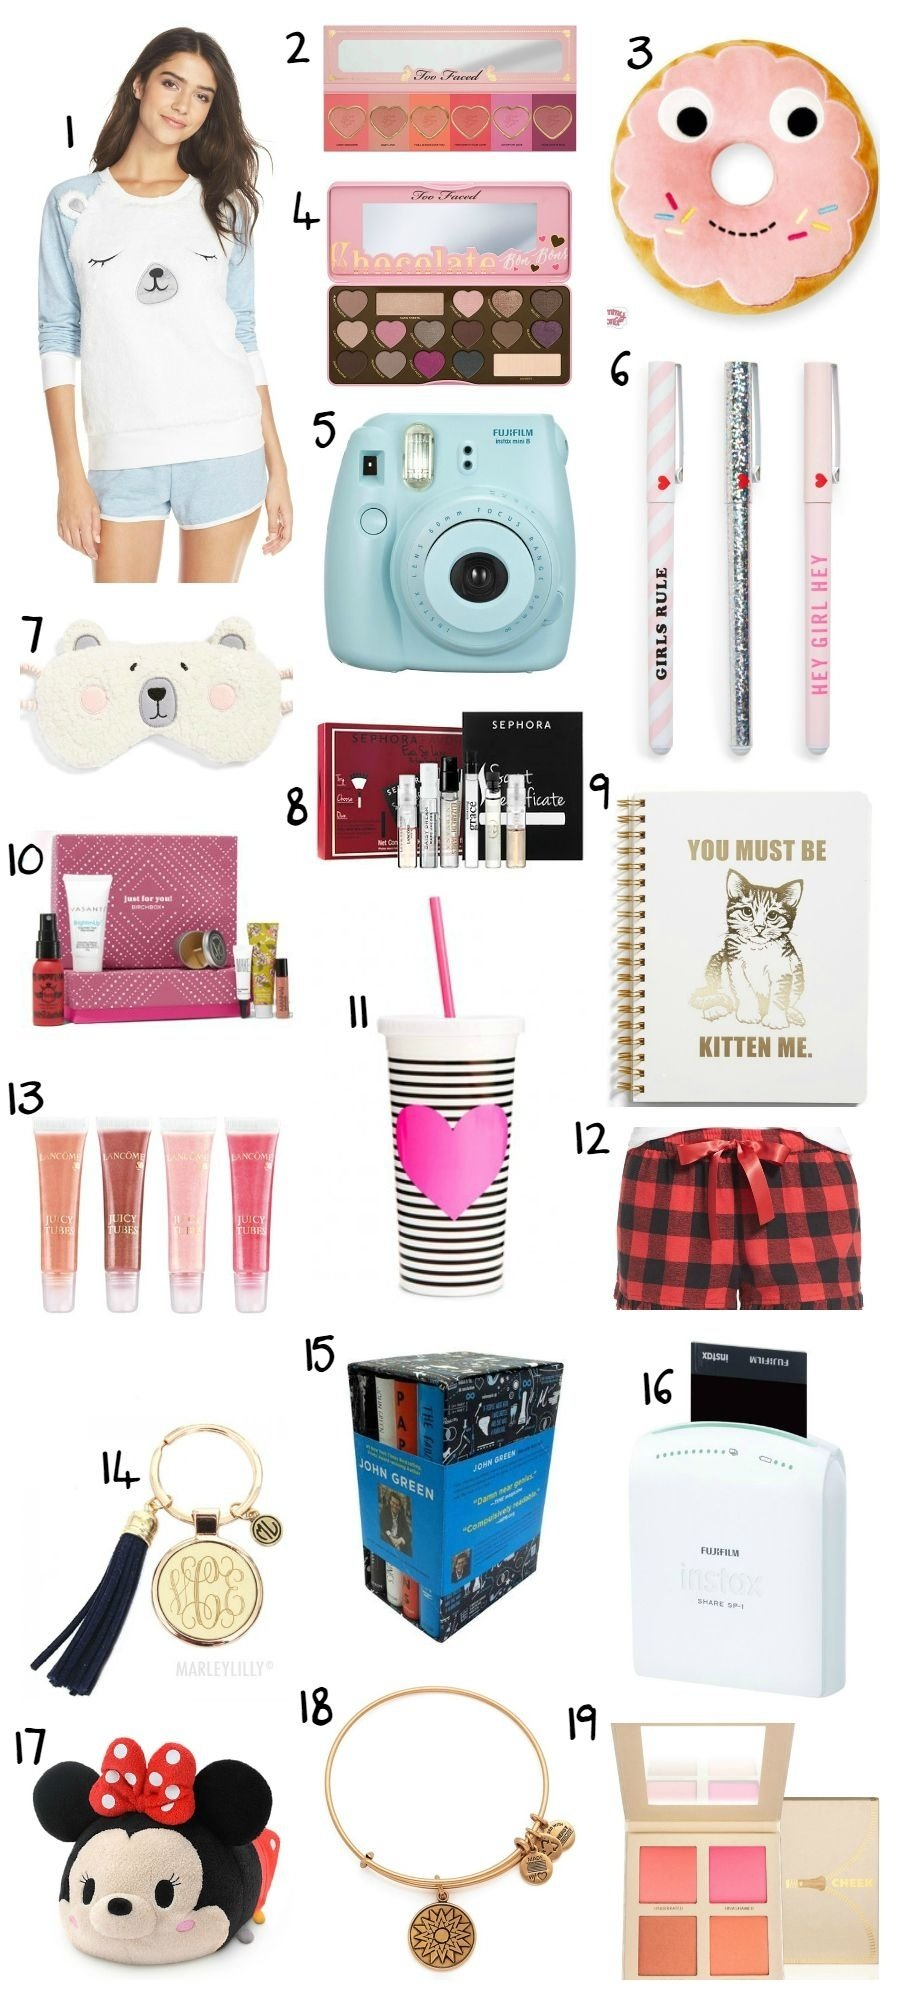 10 Awesome Good Ideas For Christmas Gifts best christmas gift ideas for teens ashley brooke christmas gift 24 2020